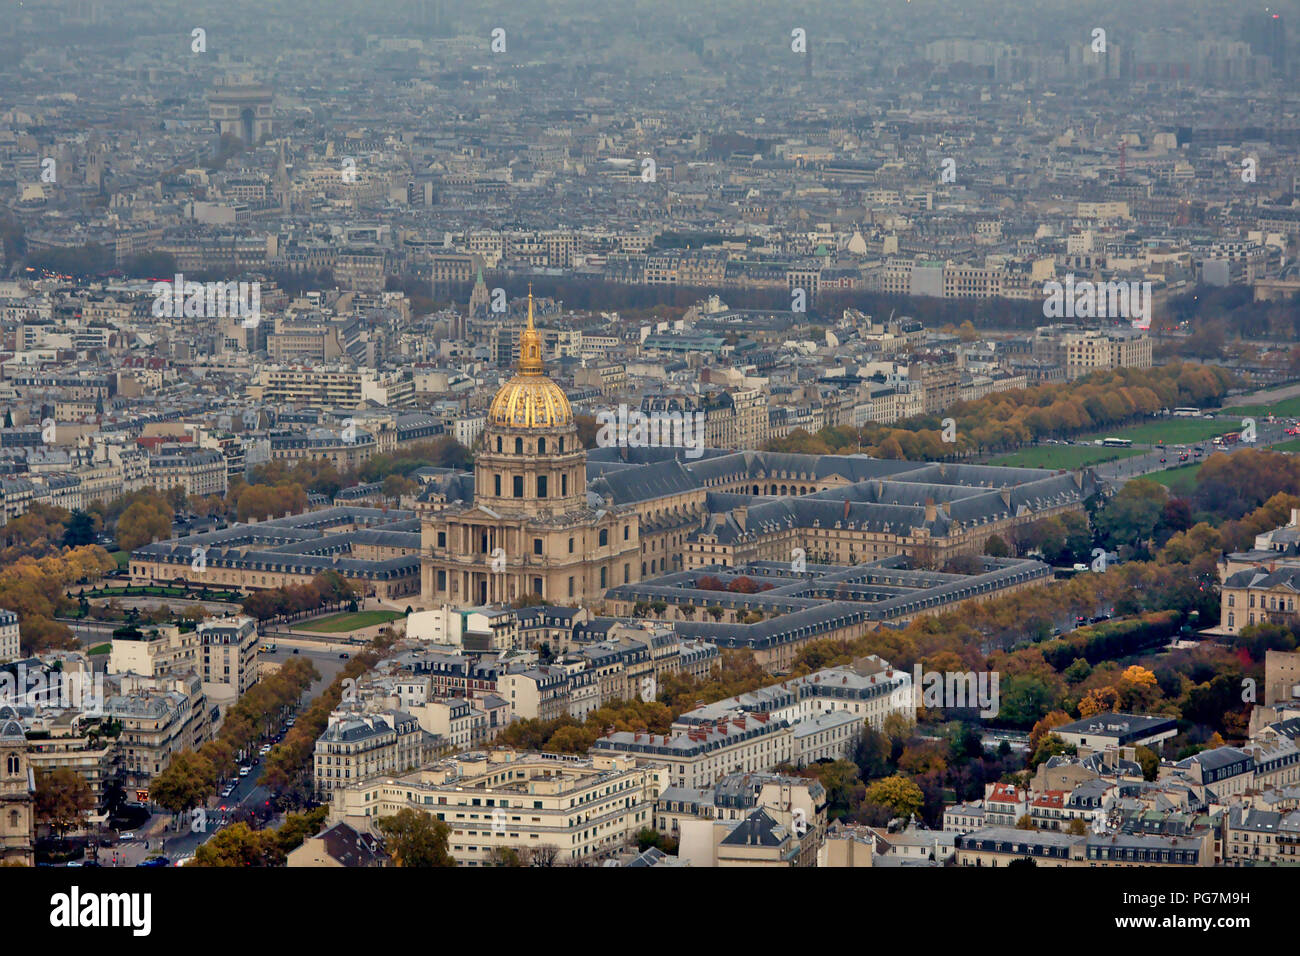 Aerial view on the National Invalides Hotel with Saint-Louis cathedral with golden cupola. Paris, France - Stock Image